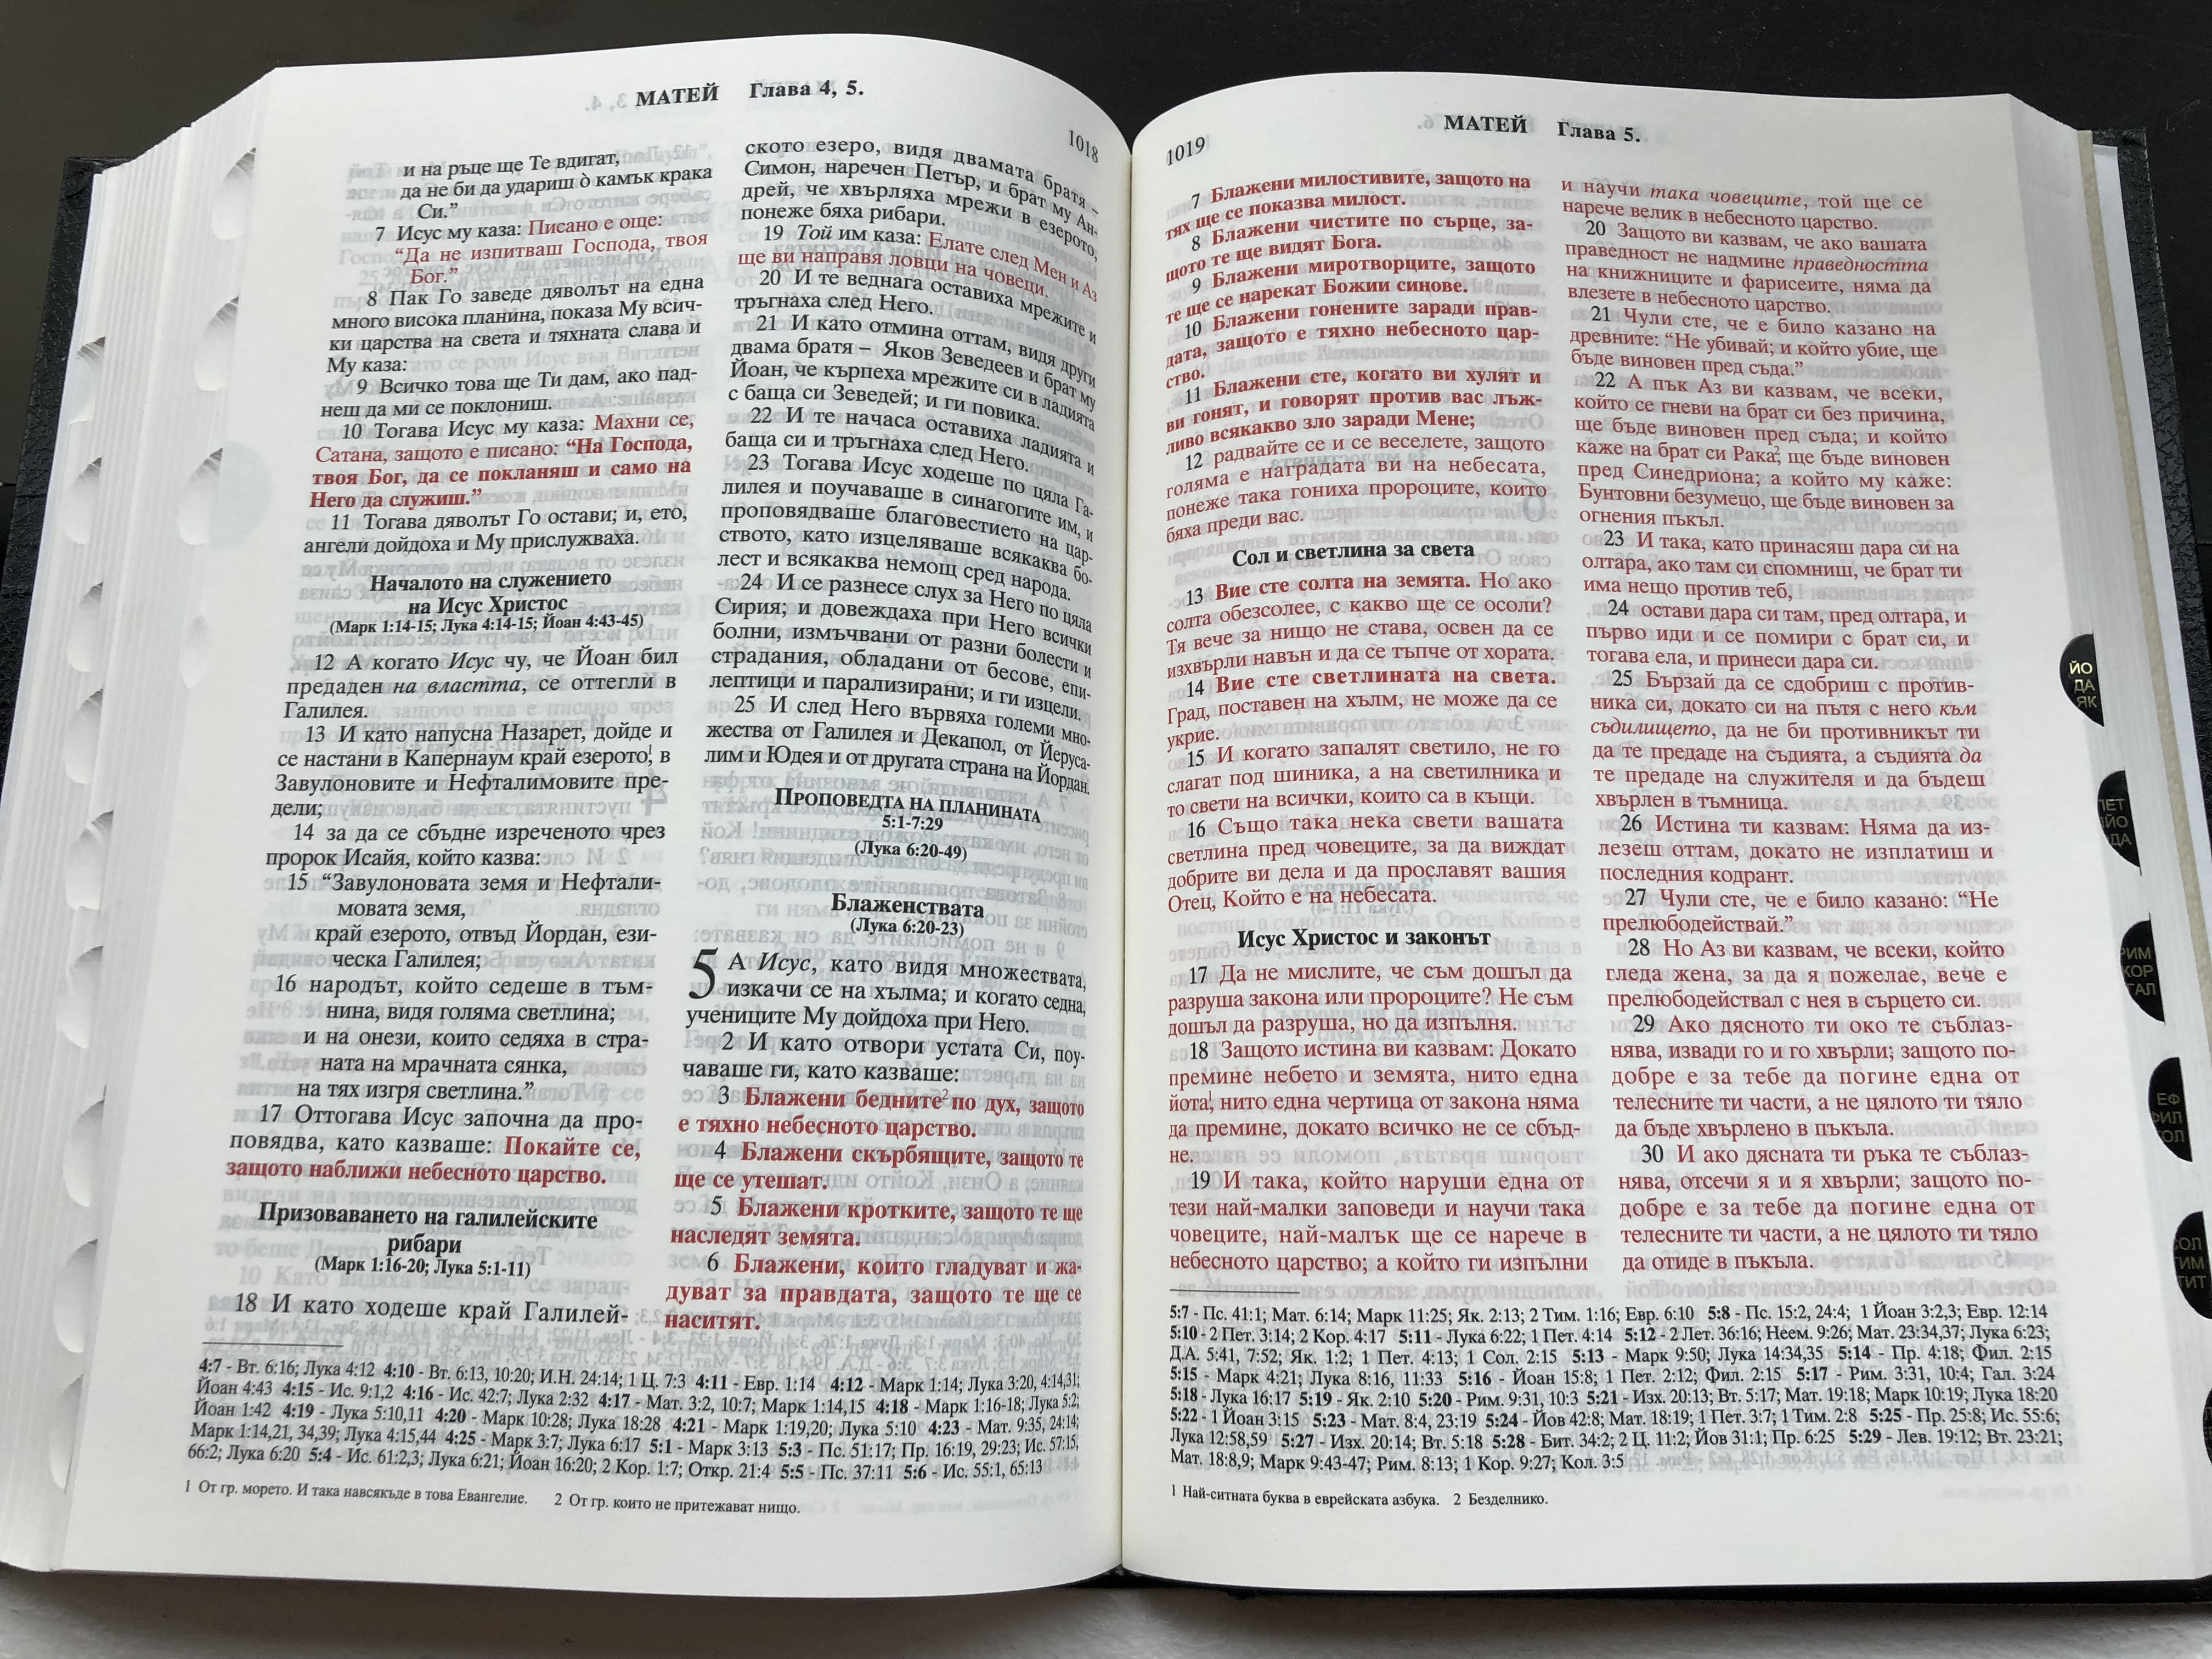 bulgarian-bible-black-hardcover-with-thumb-index-the-words-of-jesus-in-red-8-.jpg